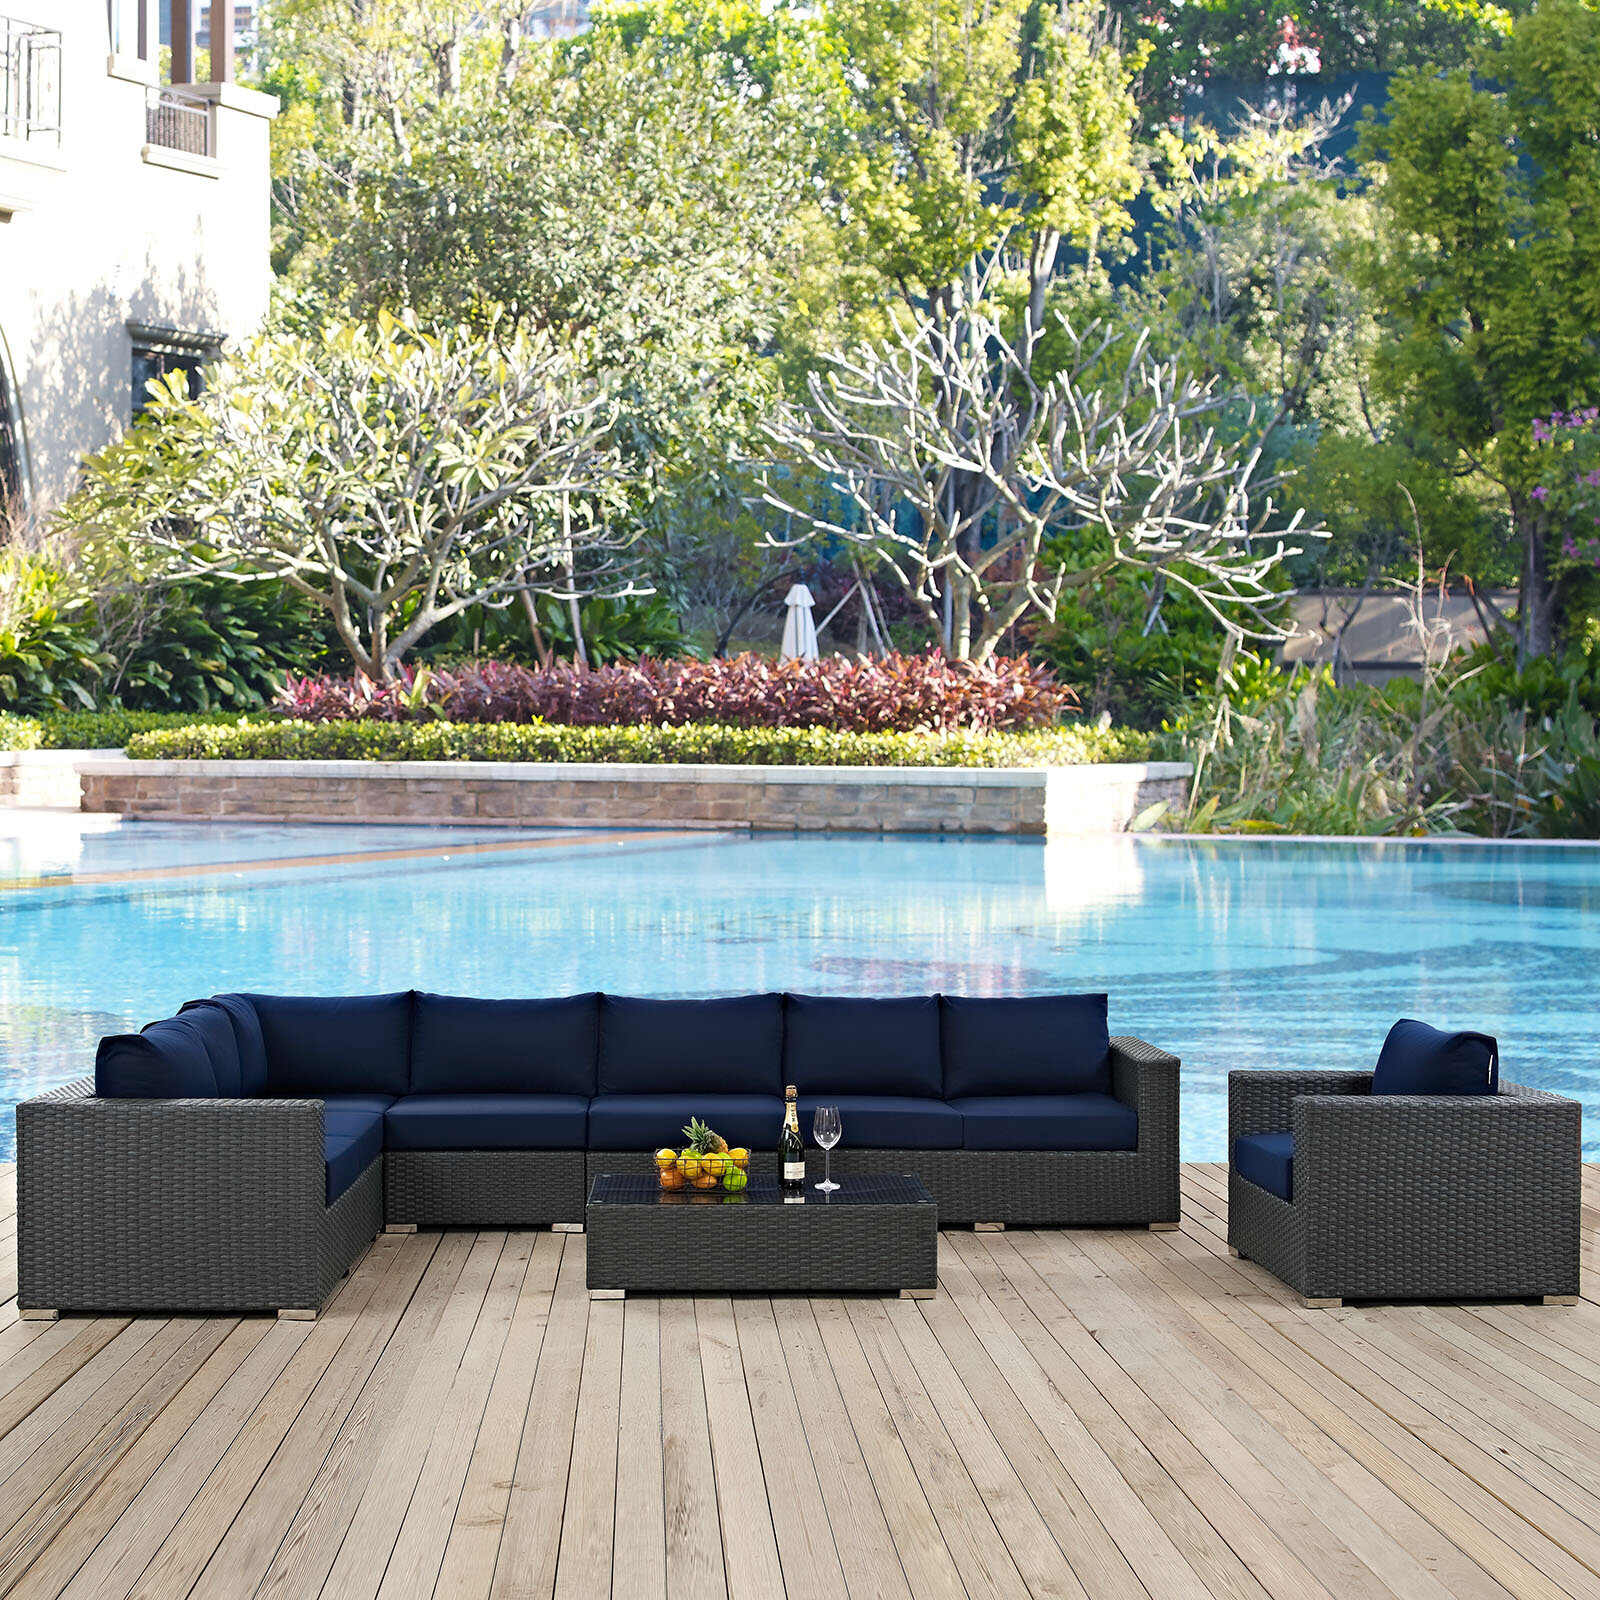 wicker sofa outdoor catalina ip com furniture with cushions patio round crosley sand walmart sectional